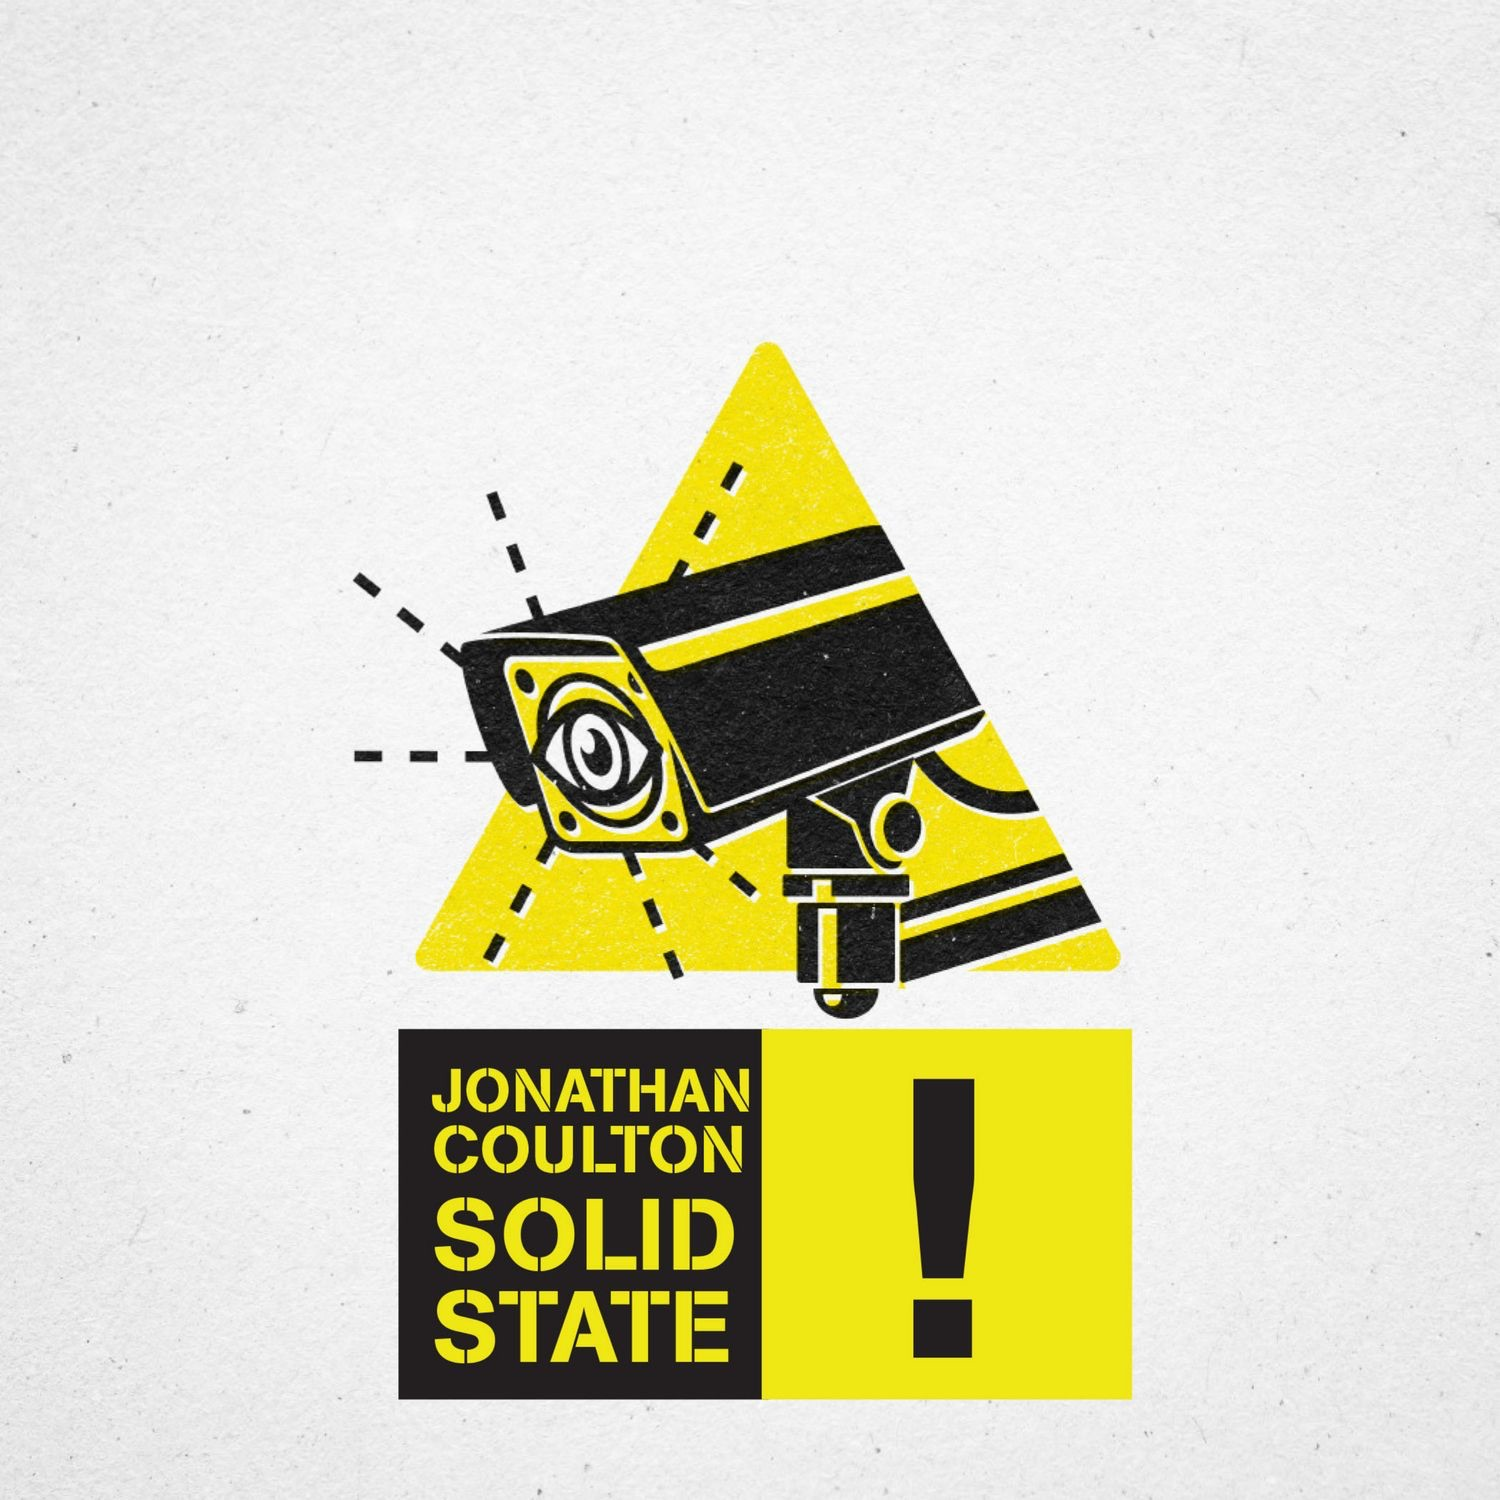 Jonathan Coulton (Solid State)